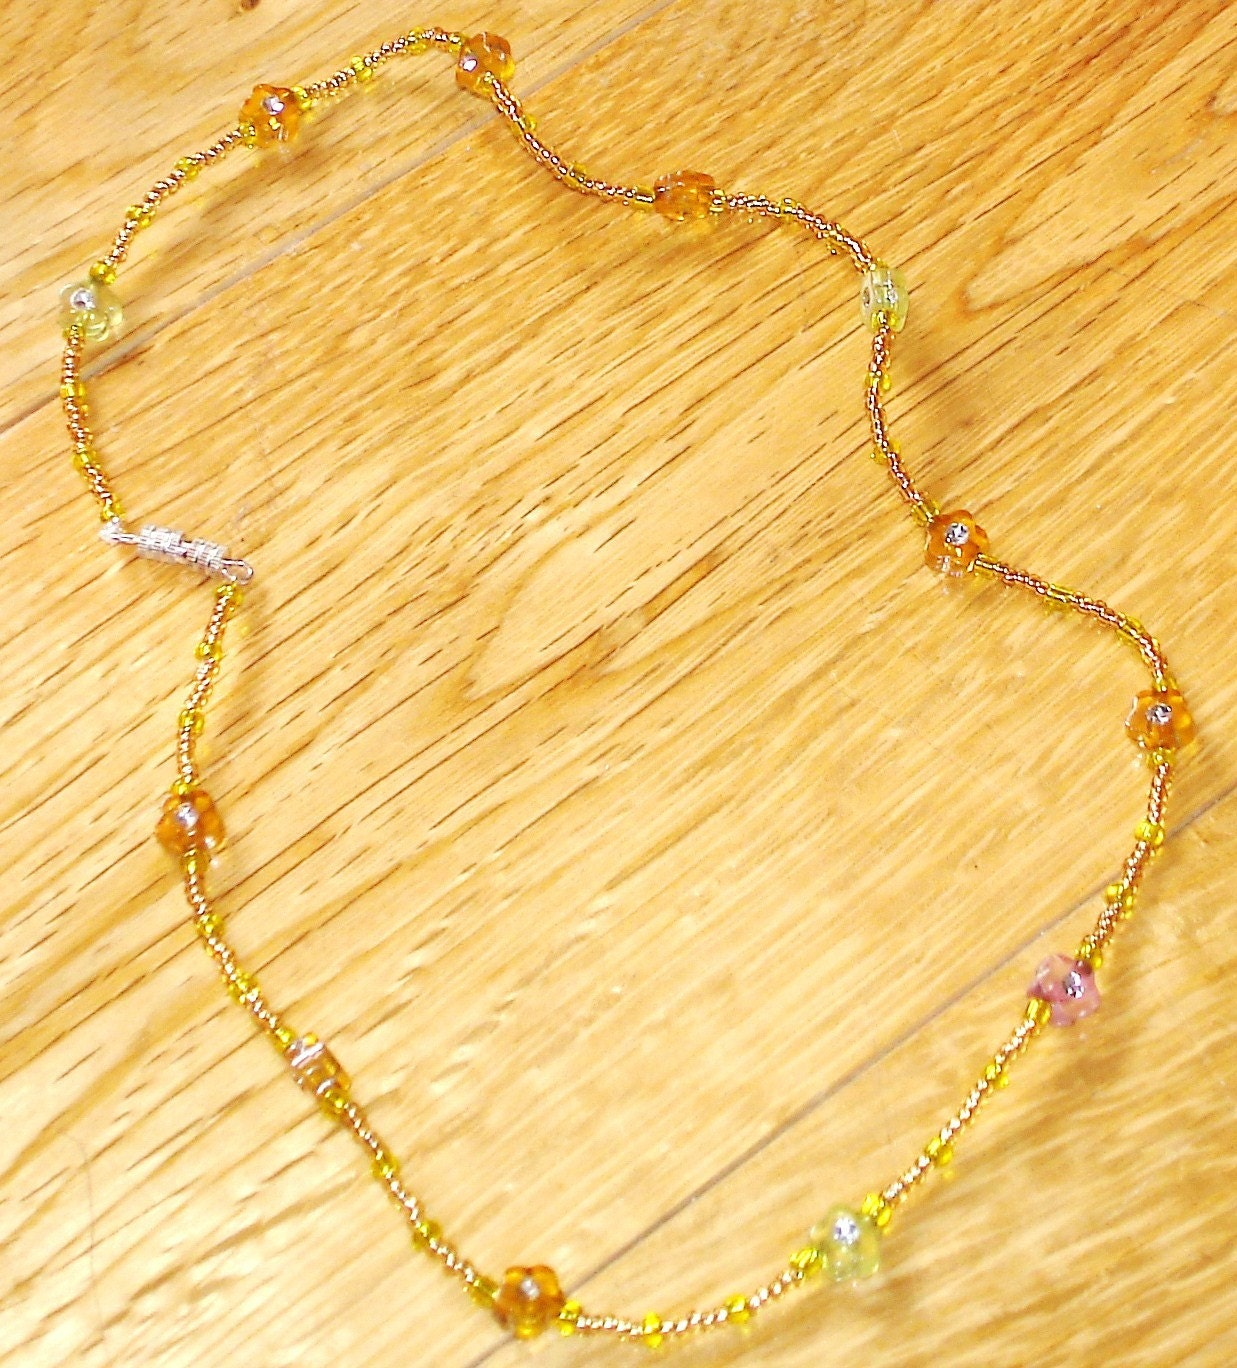 Grecian Sunshine yellow daisy beaded necklace